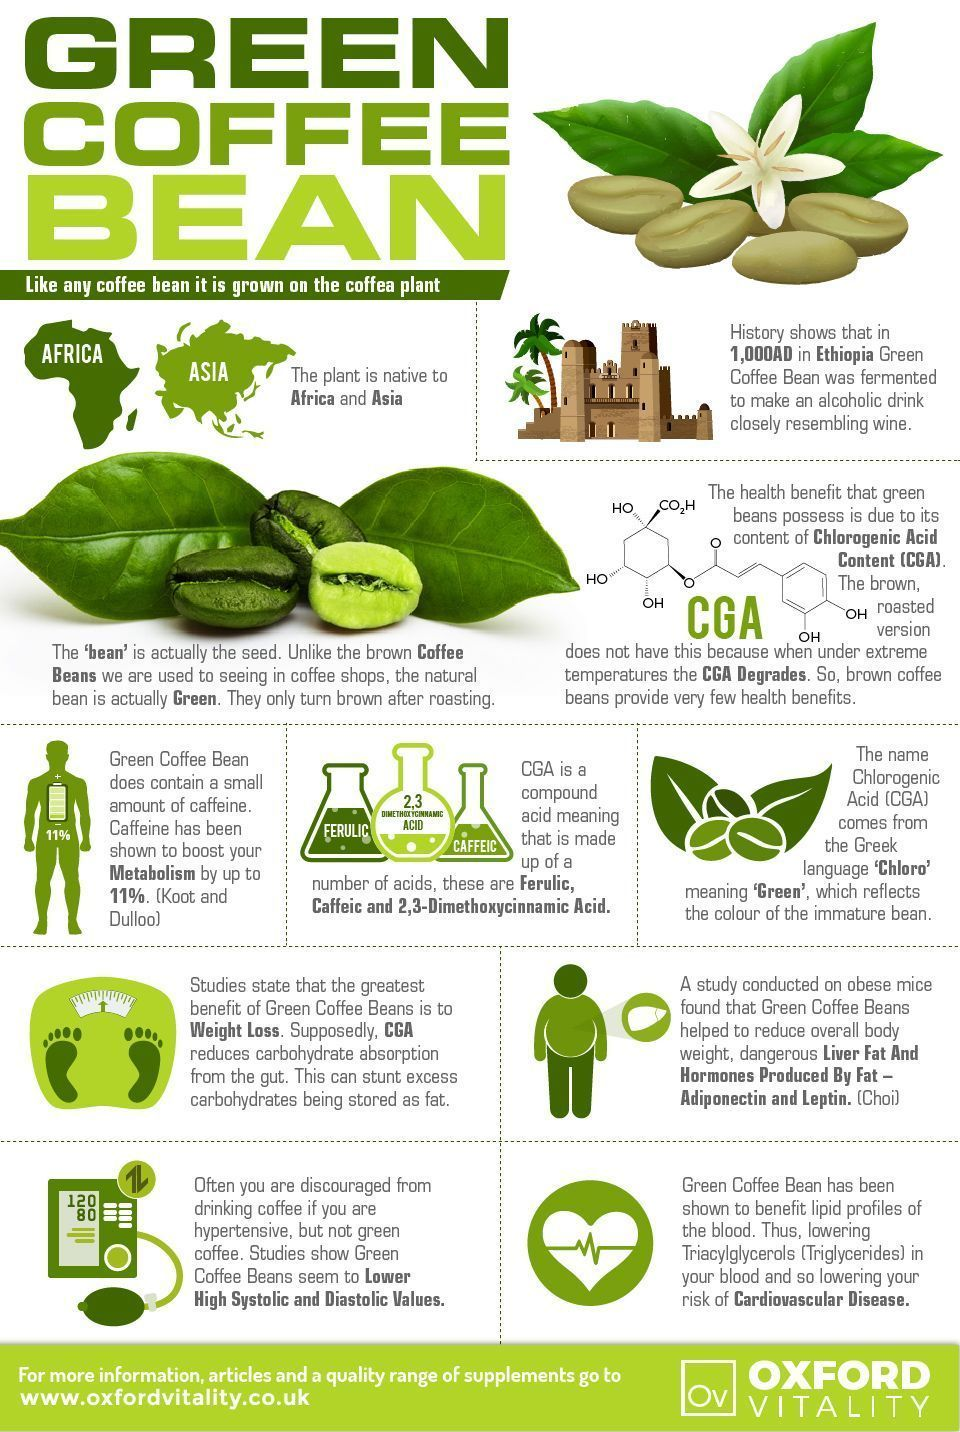 Pin by David kane on Health Green coffee bean, Green